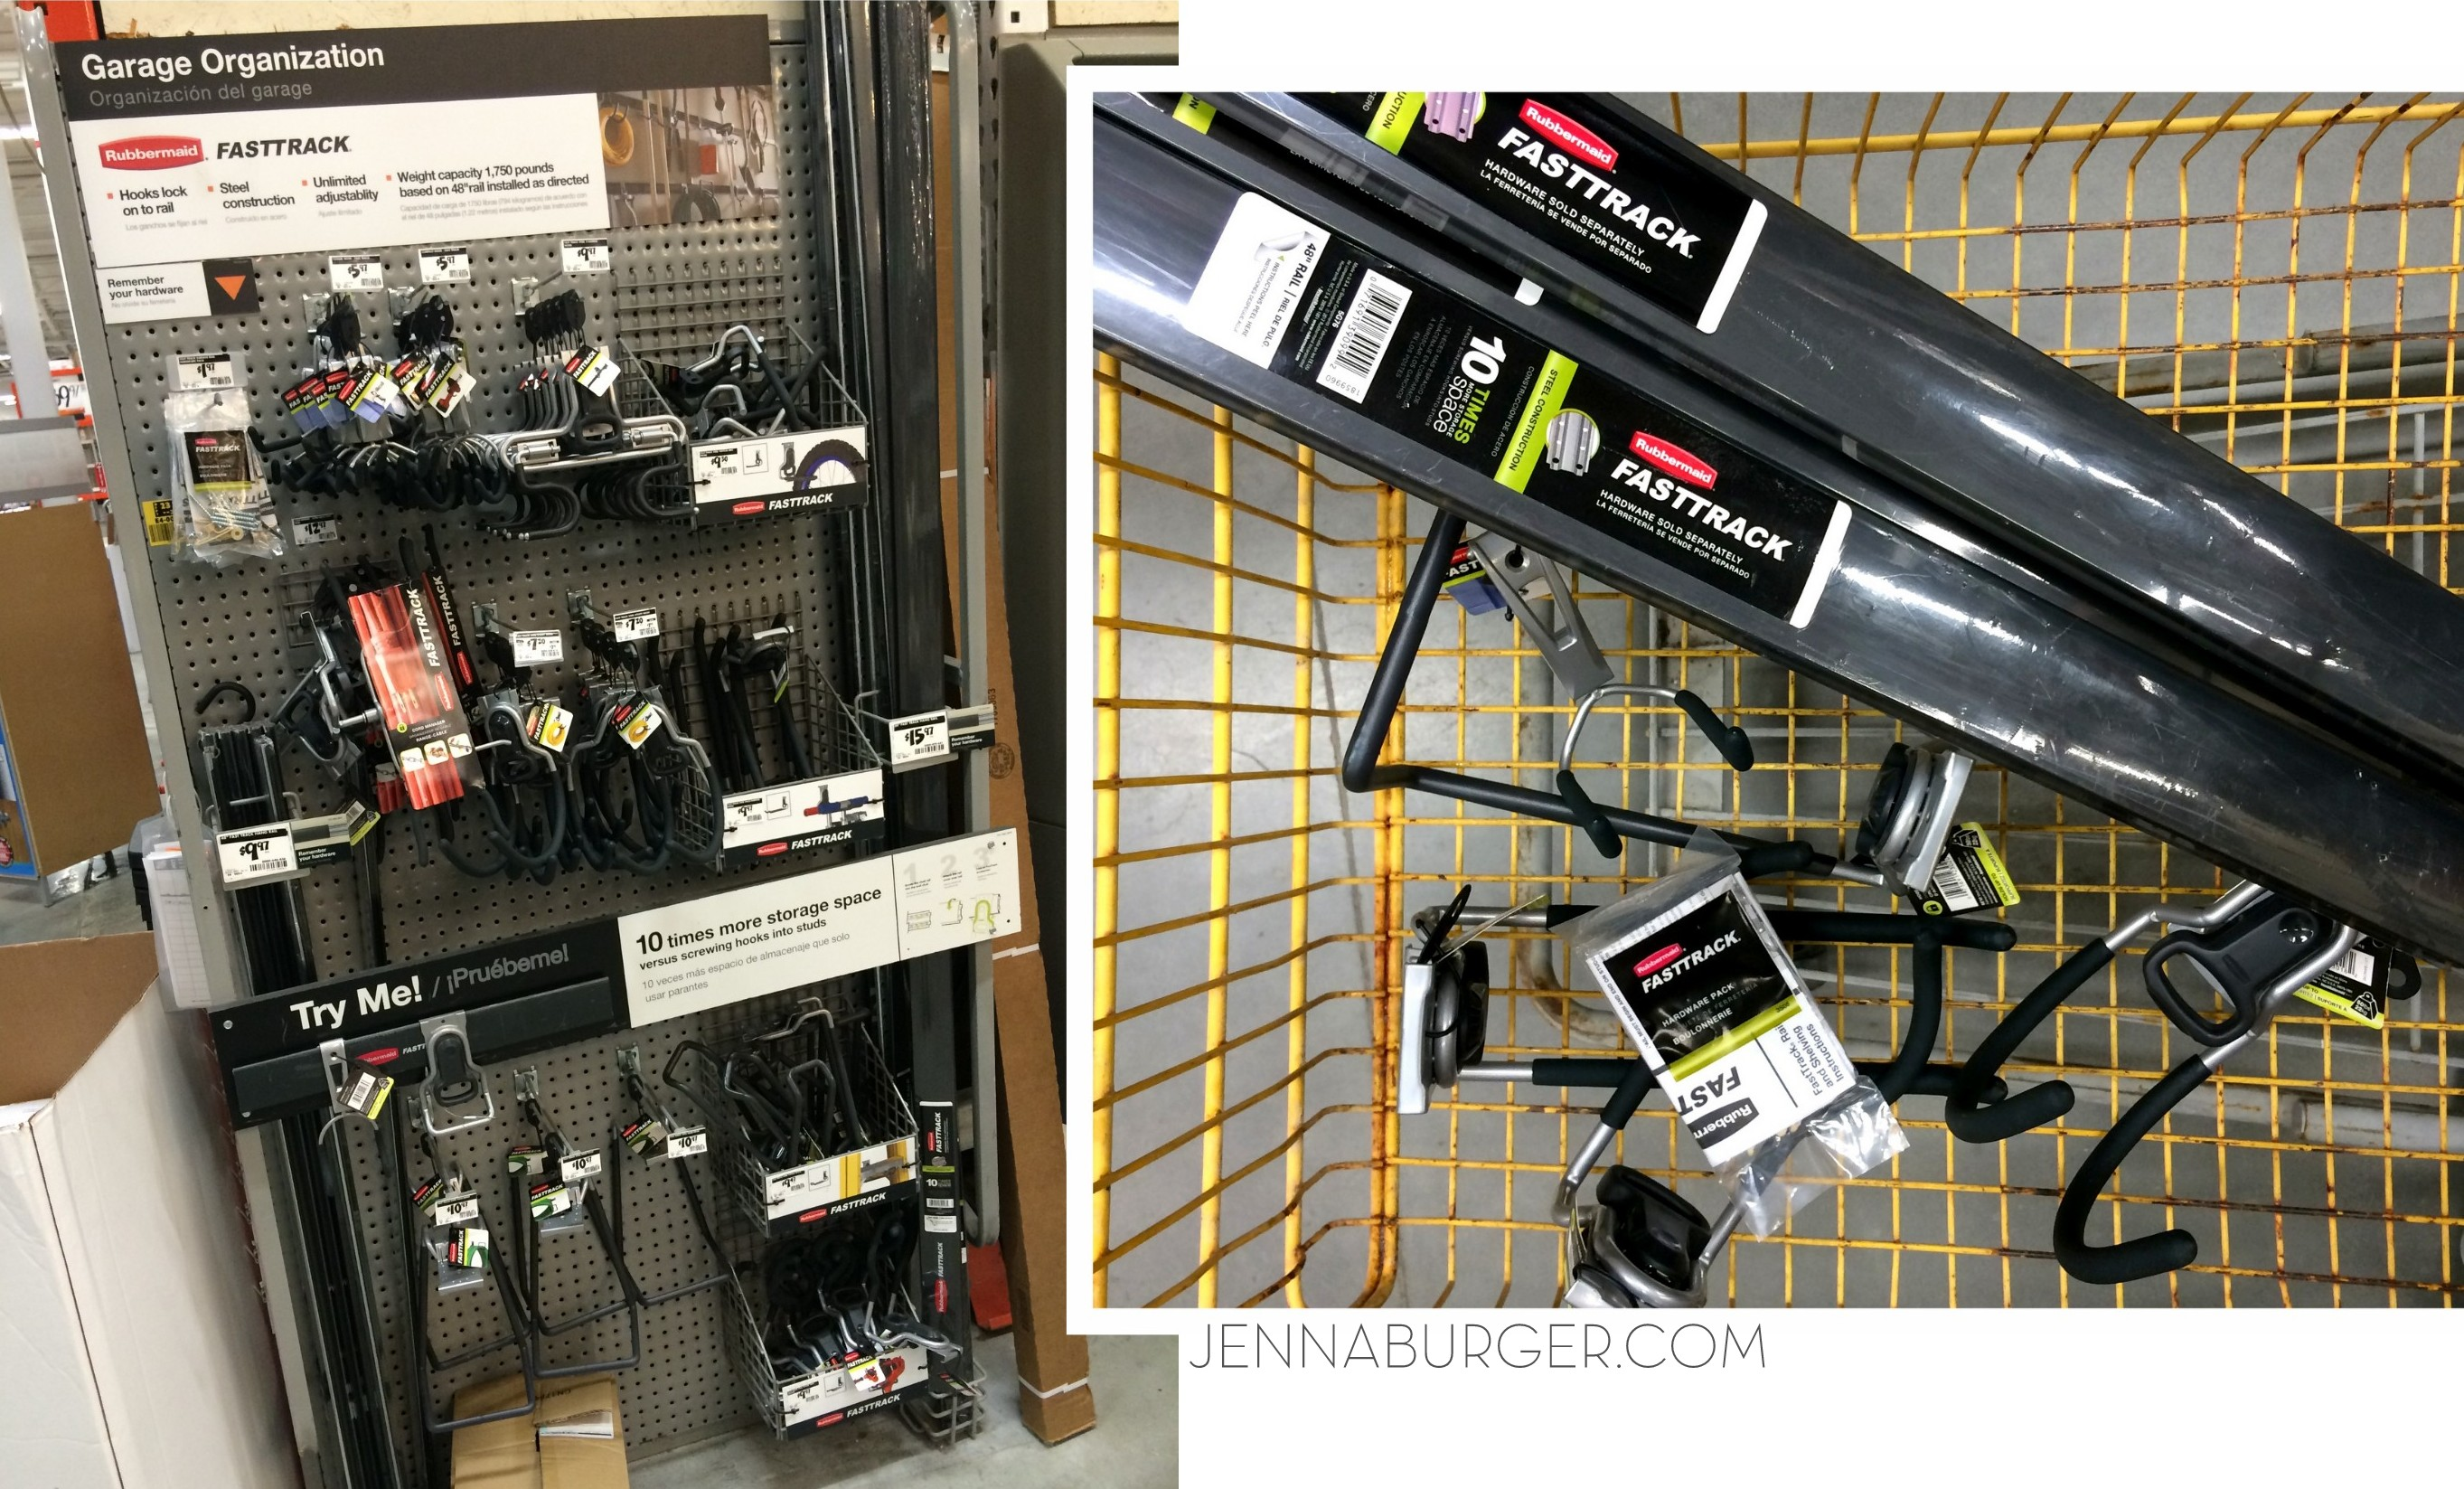 rubbermaid garage organization ideas - Getting Organized in the Garage Ideas for Organization